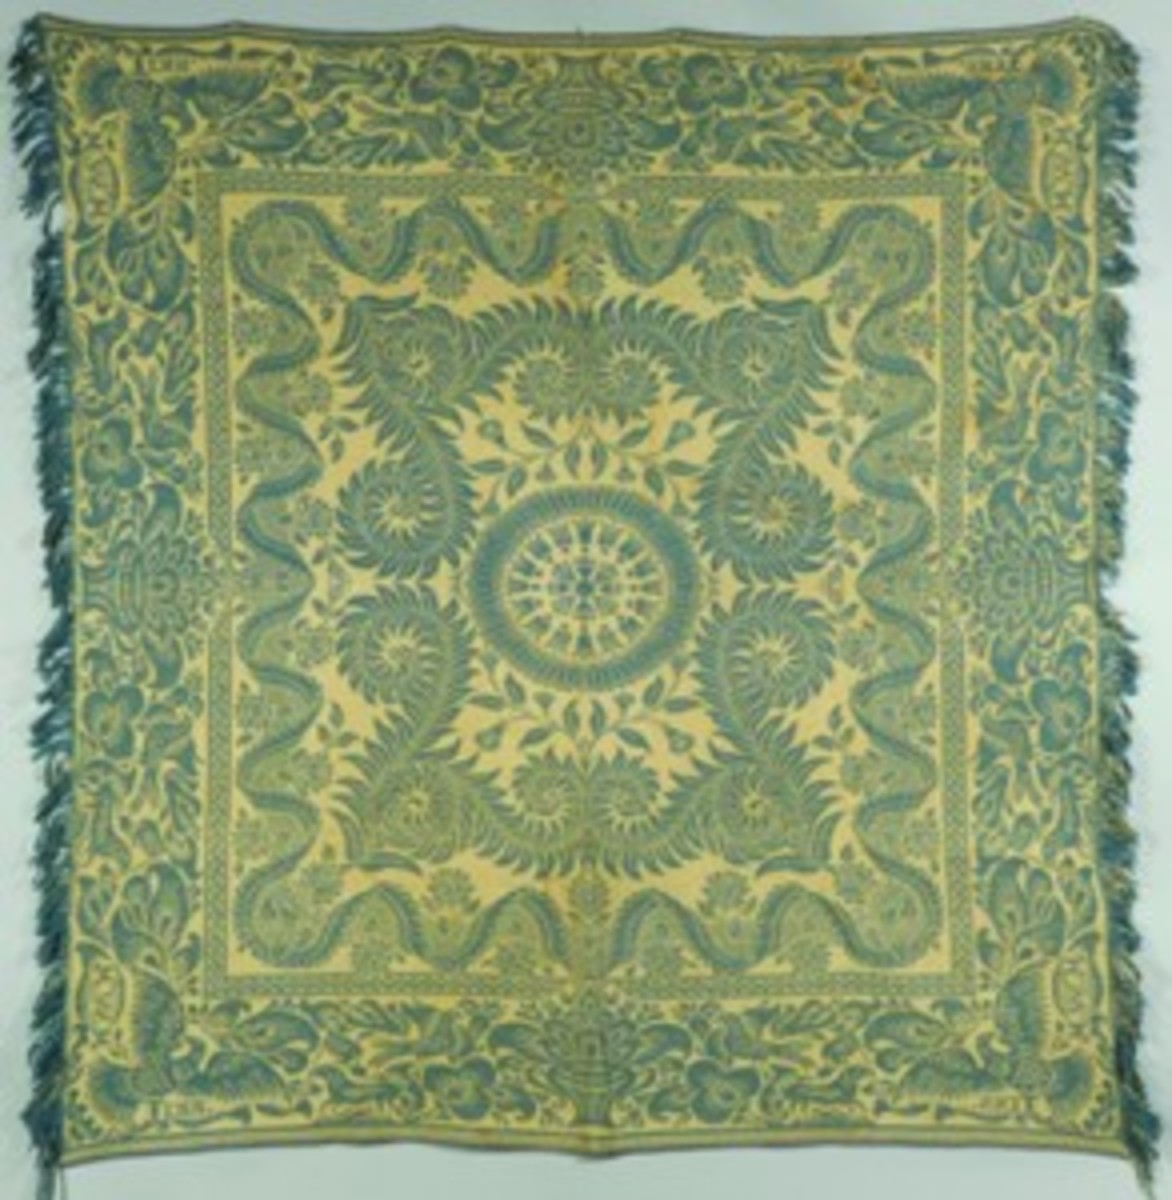 Teal coverlet